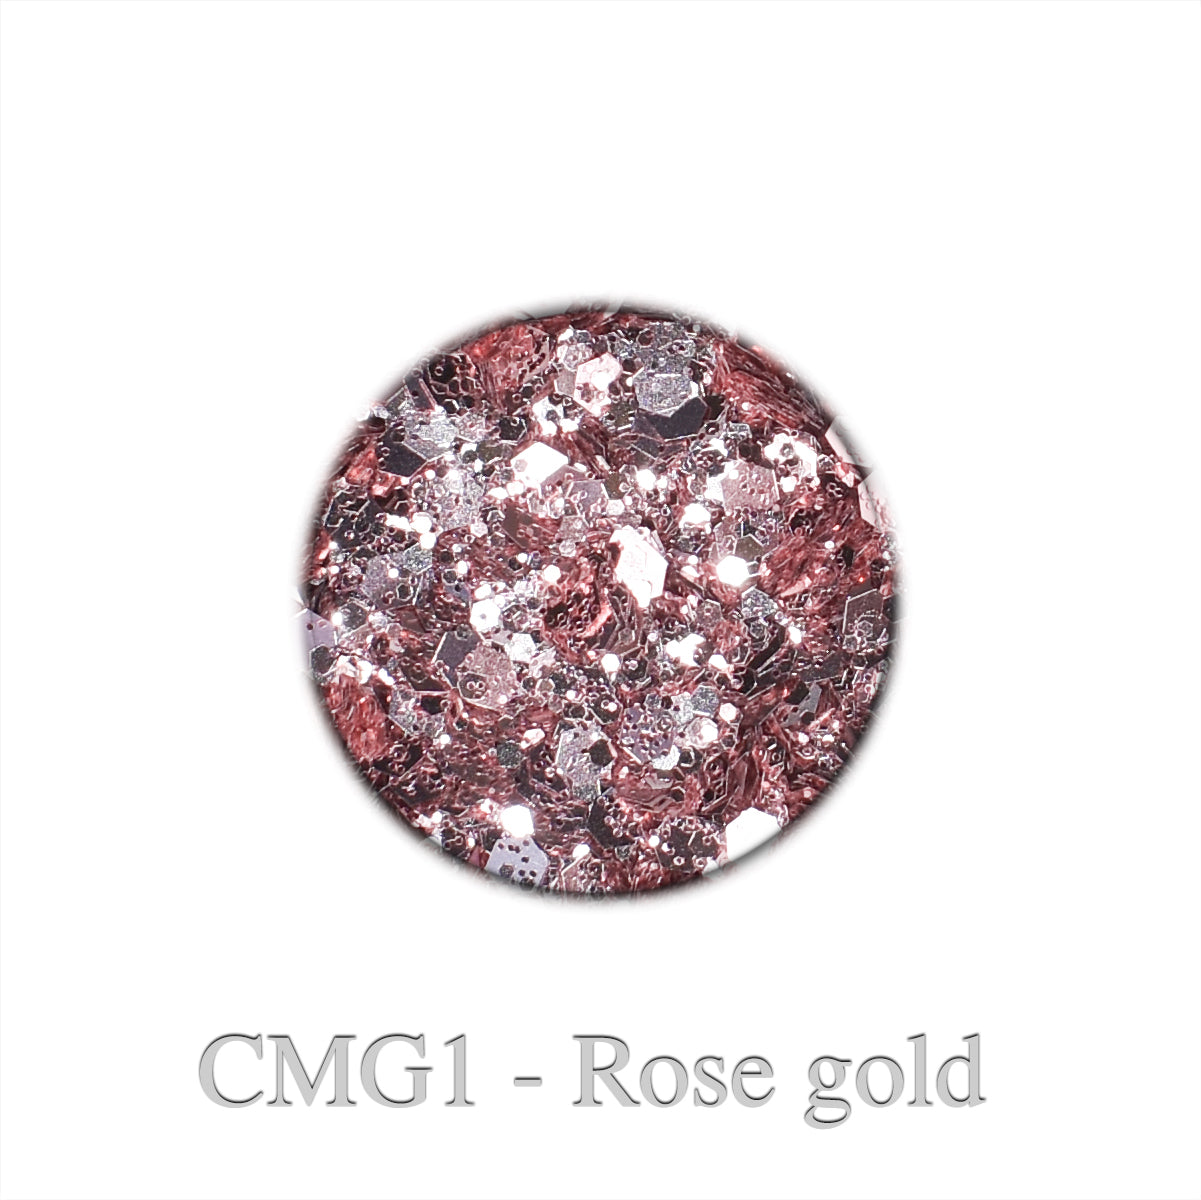 Classique Mixed Glitter - Rose gold CMG1